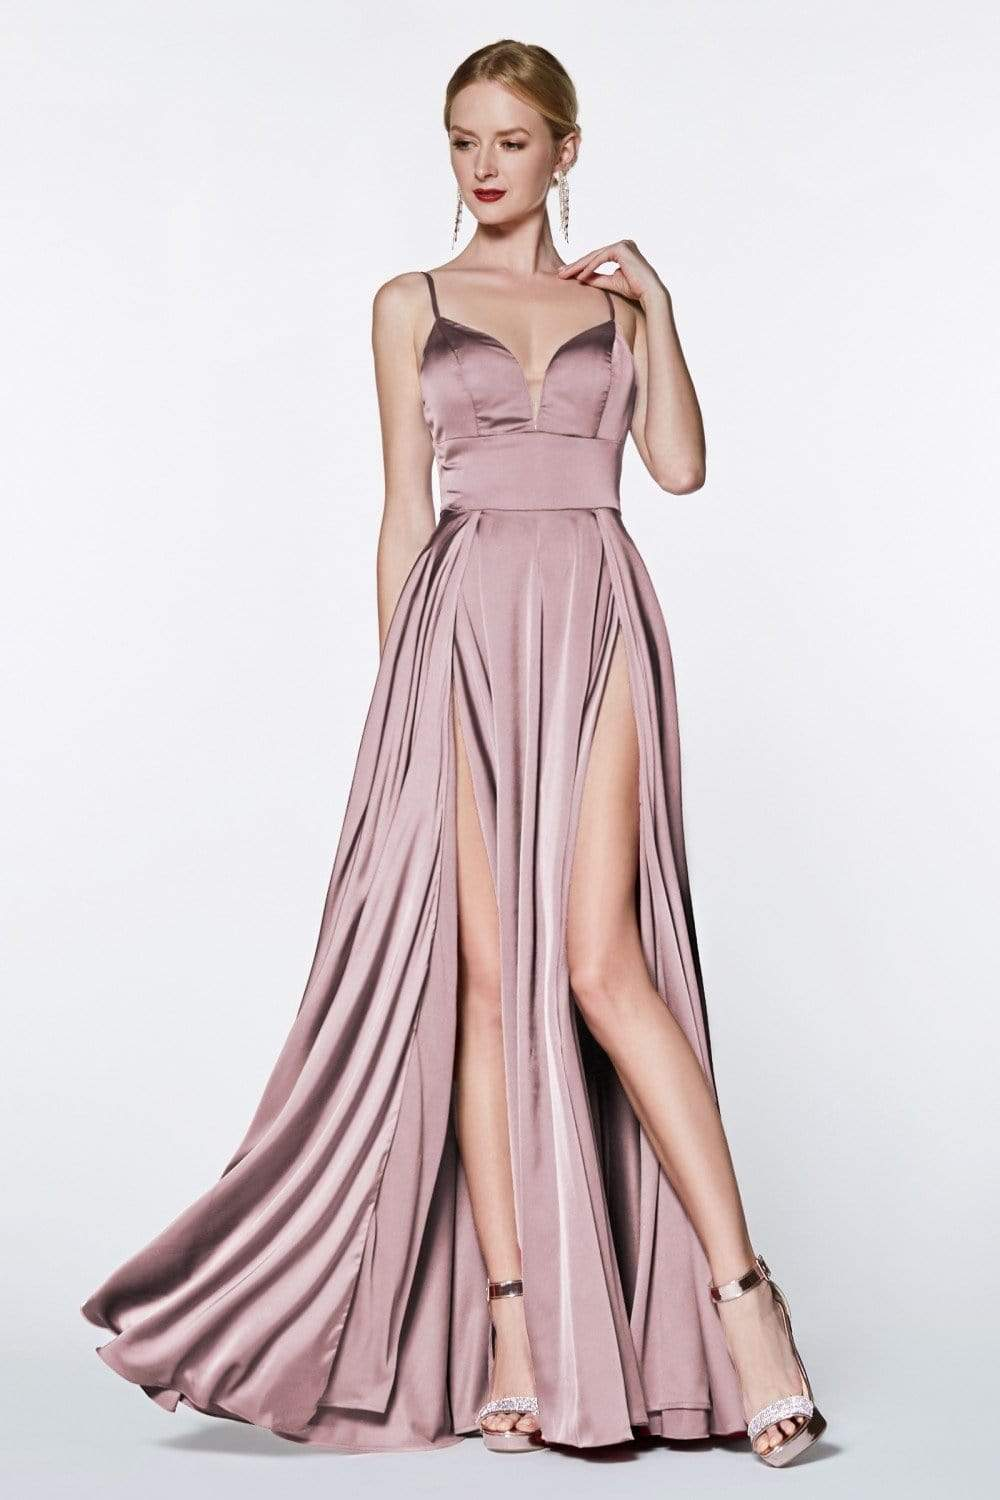 Cinderella Divine - CJ526 Sheer Plunging Neck Double Slit Satin Gown Special Occasion Dress 2 / Dusty Rose